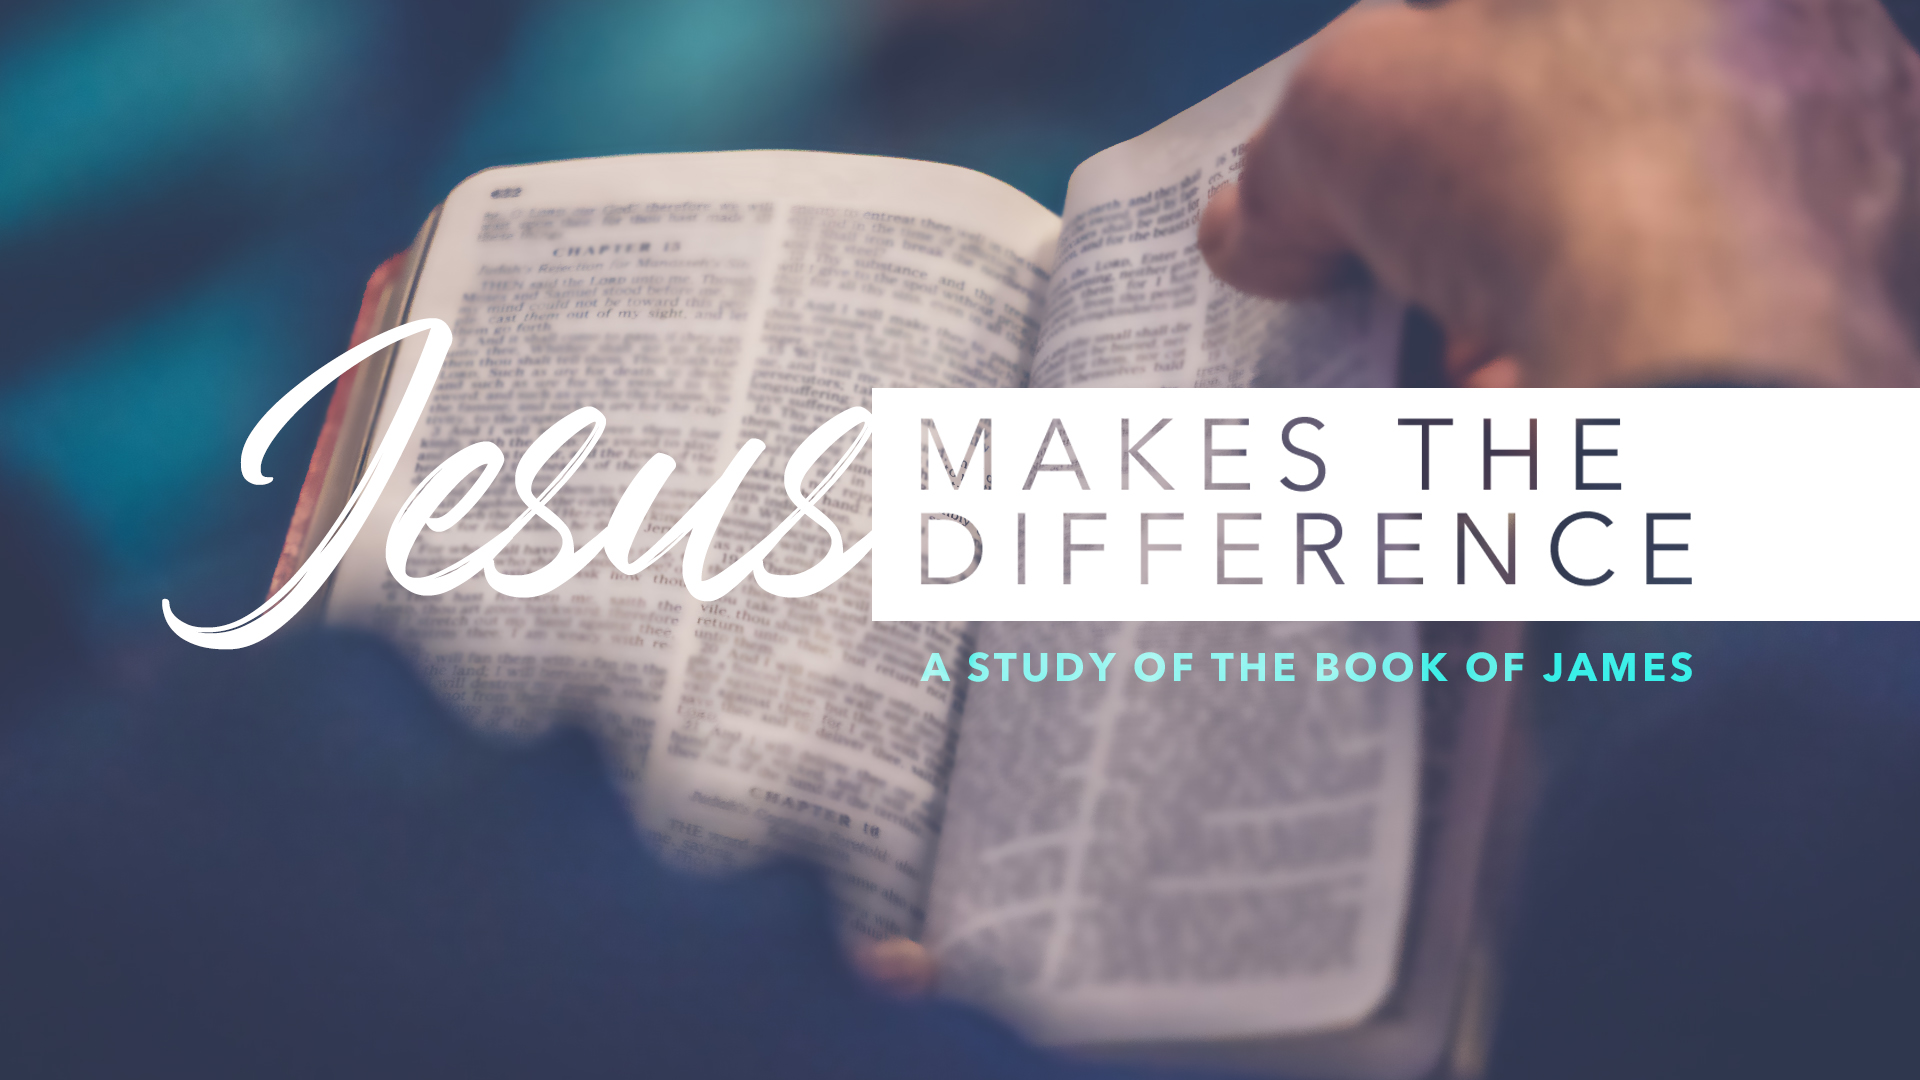 How I Gain Wisdom - Jesus Makes the Difference